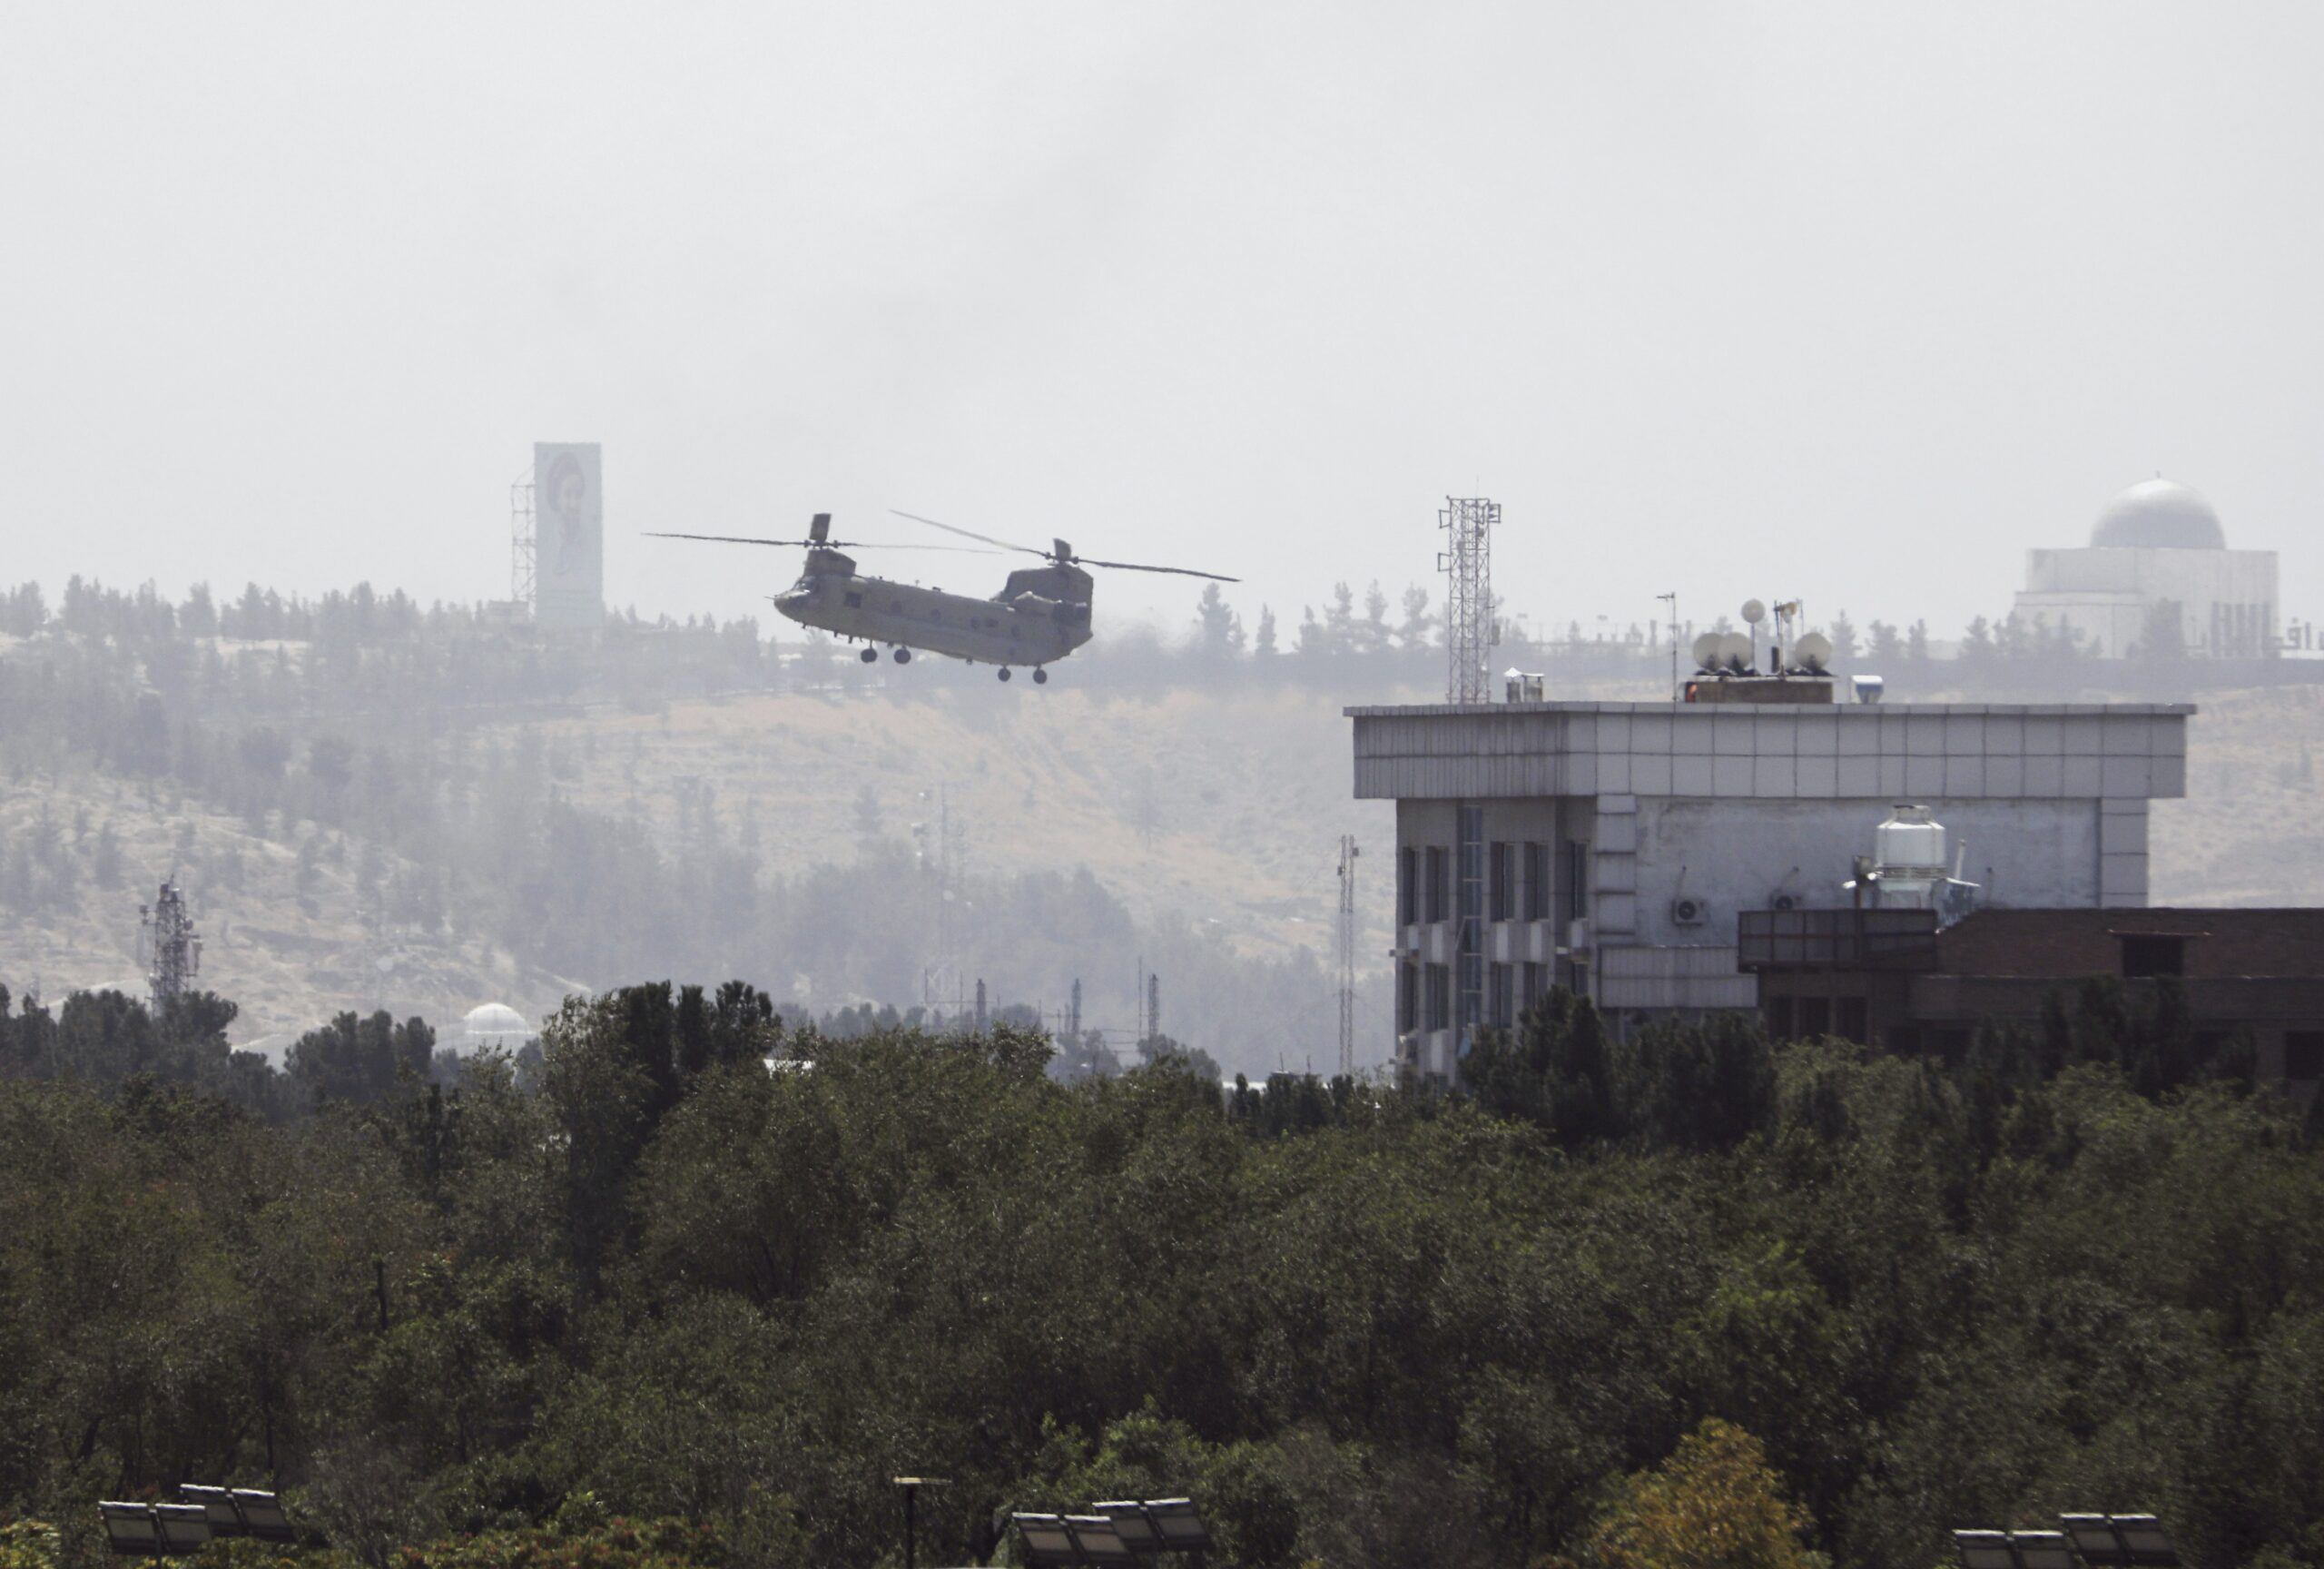 U.S. personnel were evacuated from the U.S. Embassy in Kabul, the Afghan capital, as Taliban insurgents broke through the city's defensive line, Aug. 15, 2021. (AP Photo/Rahmat Gul)